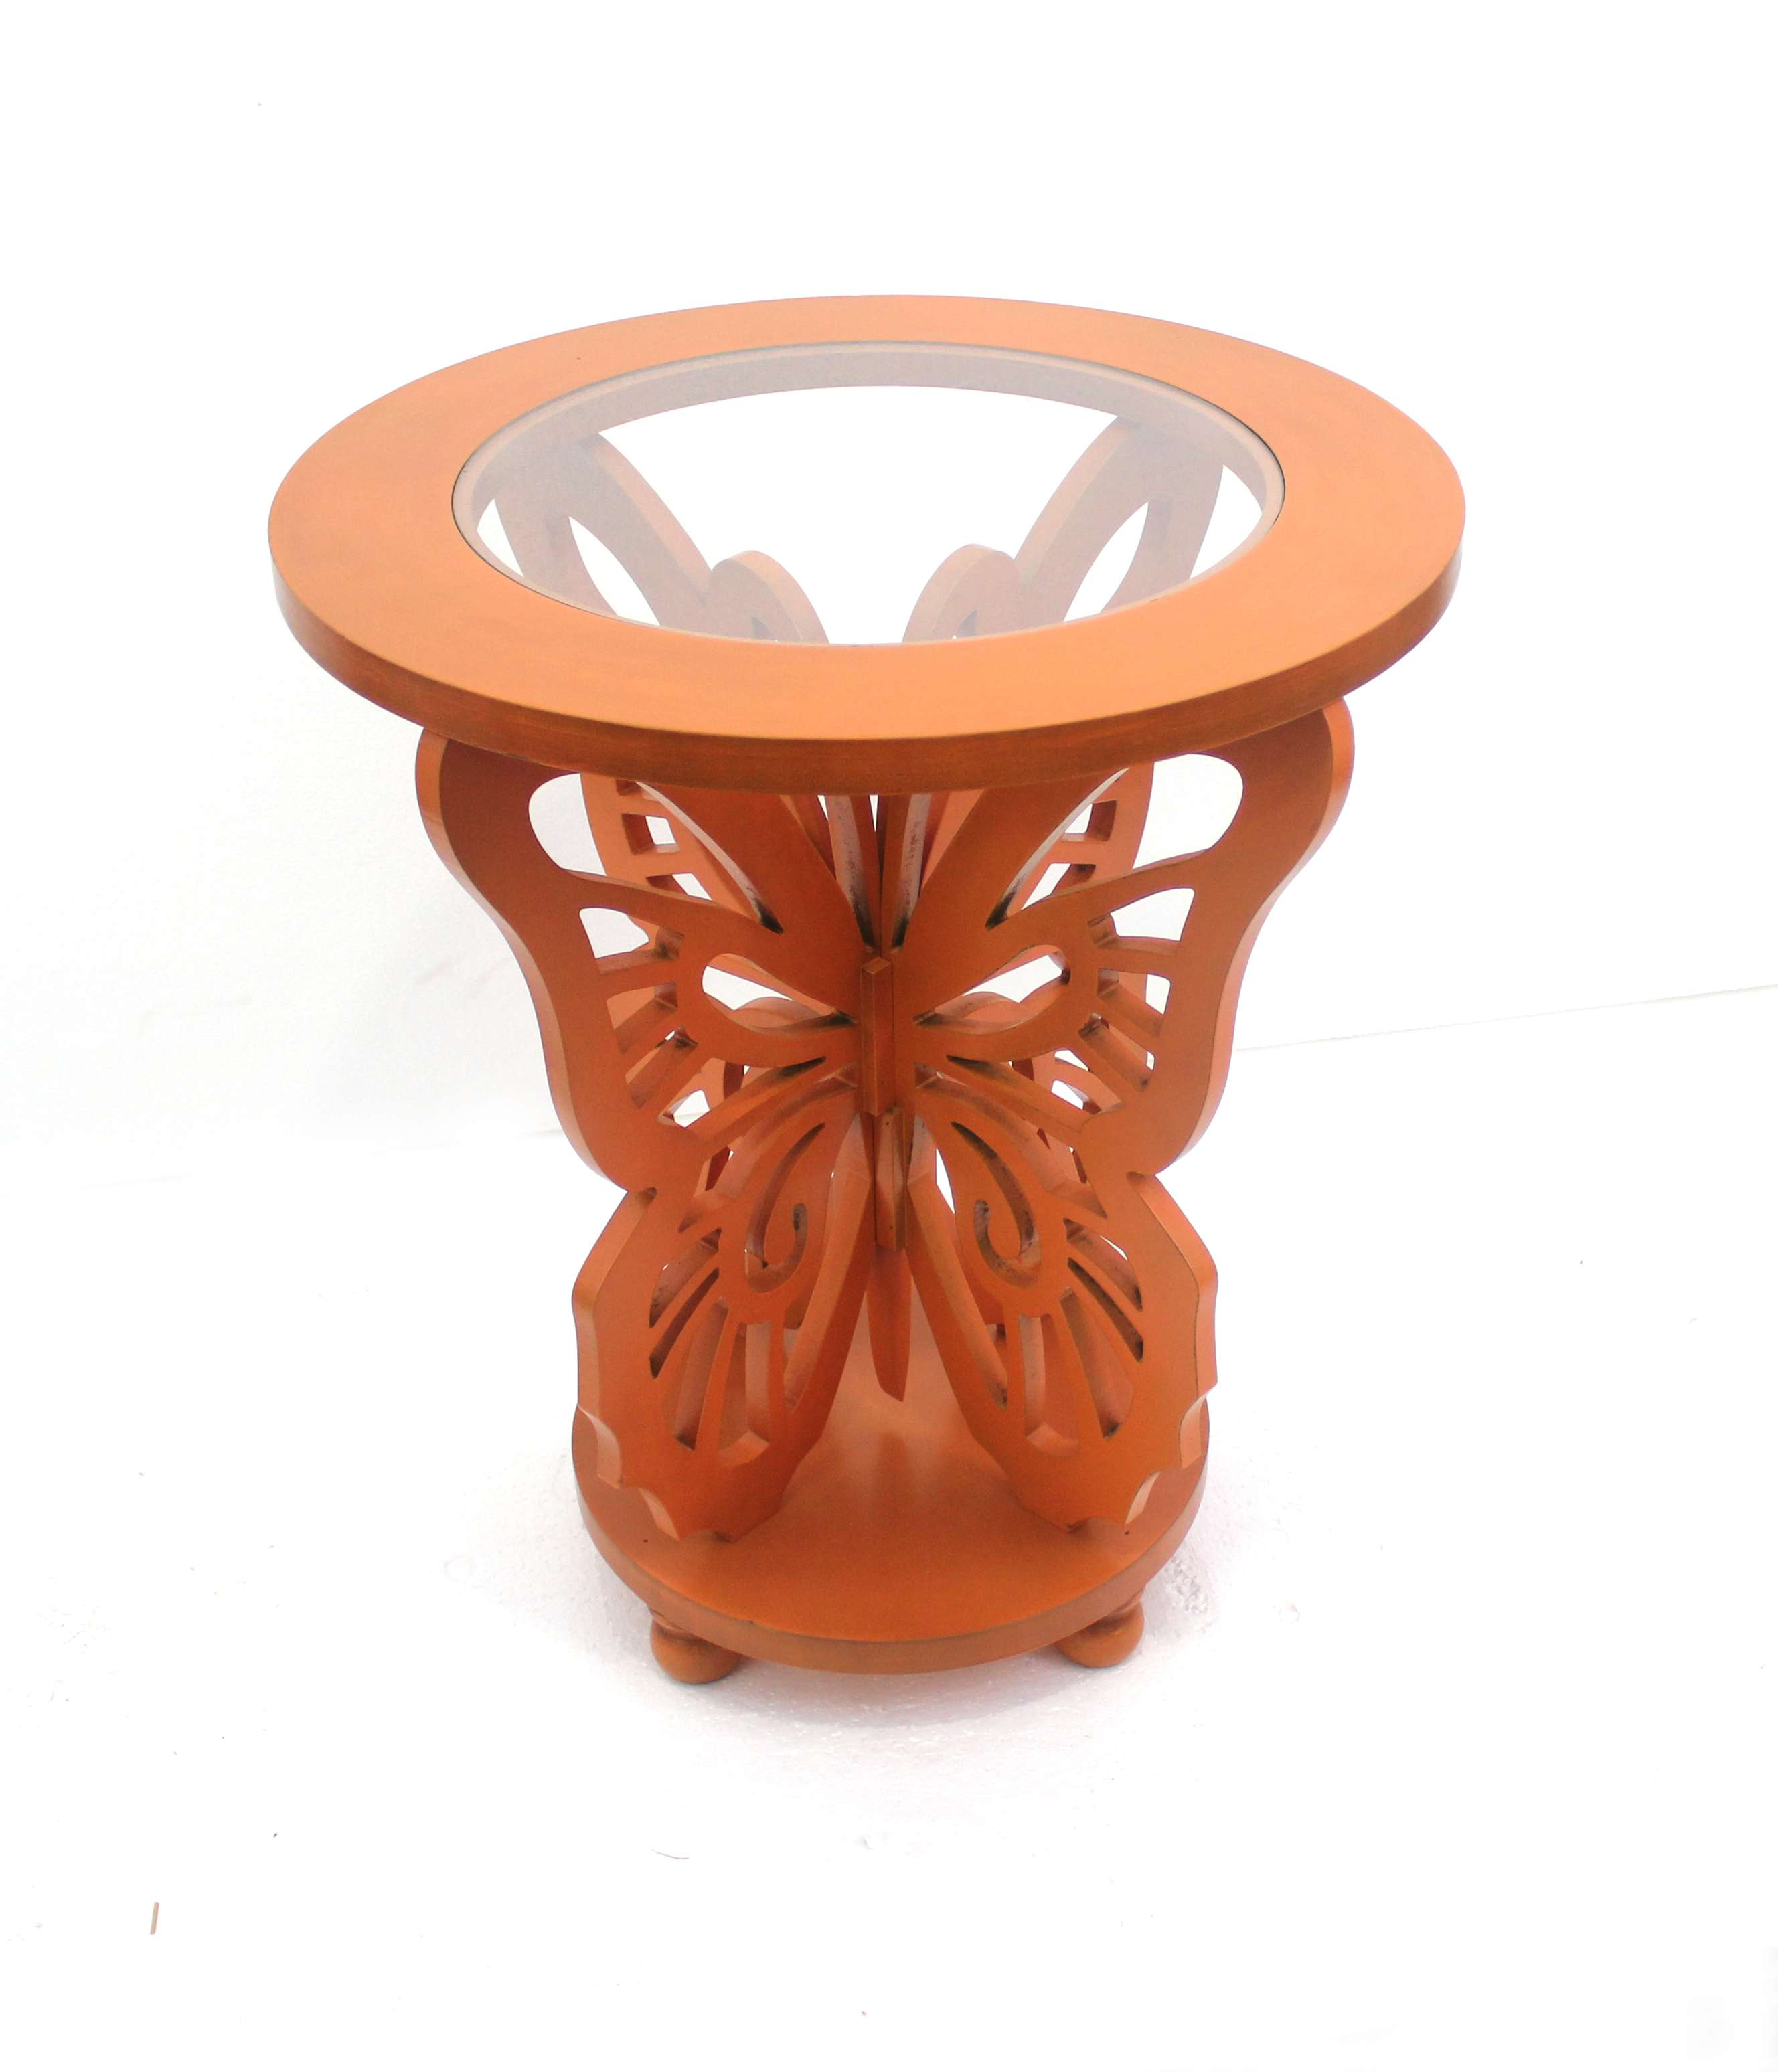 teton home orange wood butterfly accent table with glass top ceramic outdoor small patio umbrella hampton bay seat cushions bunnings chairs and tables vintage tier aluminum lawn